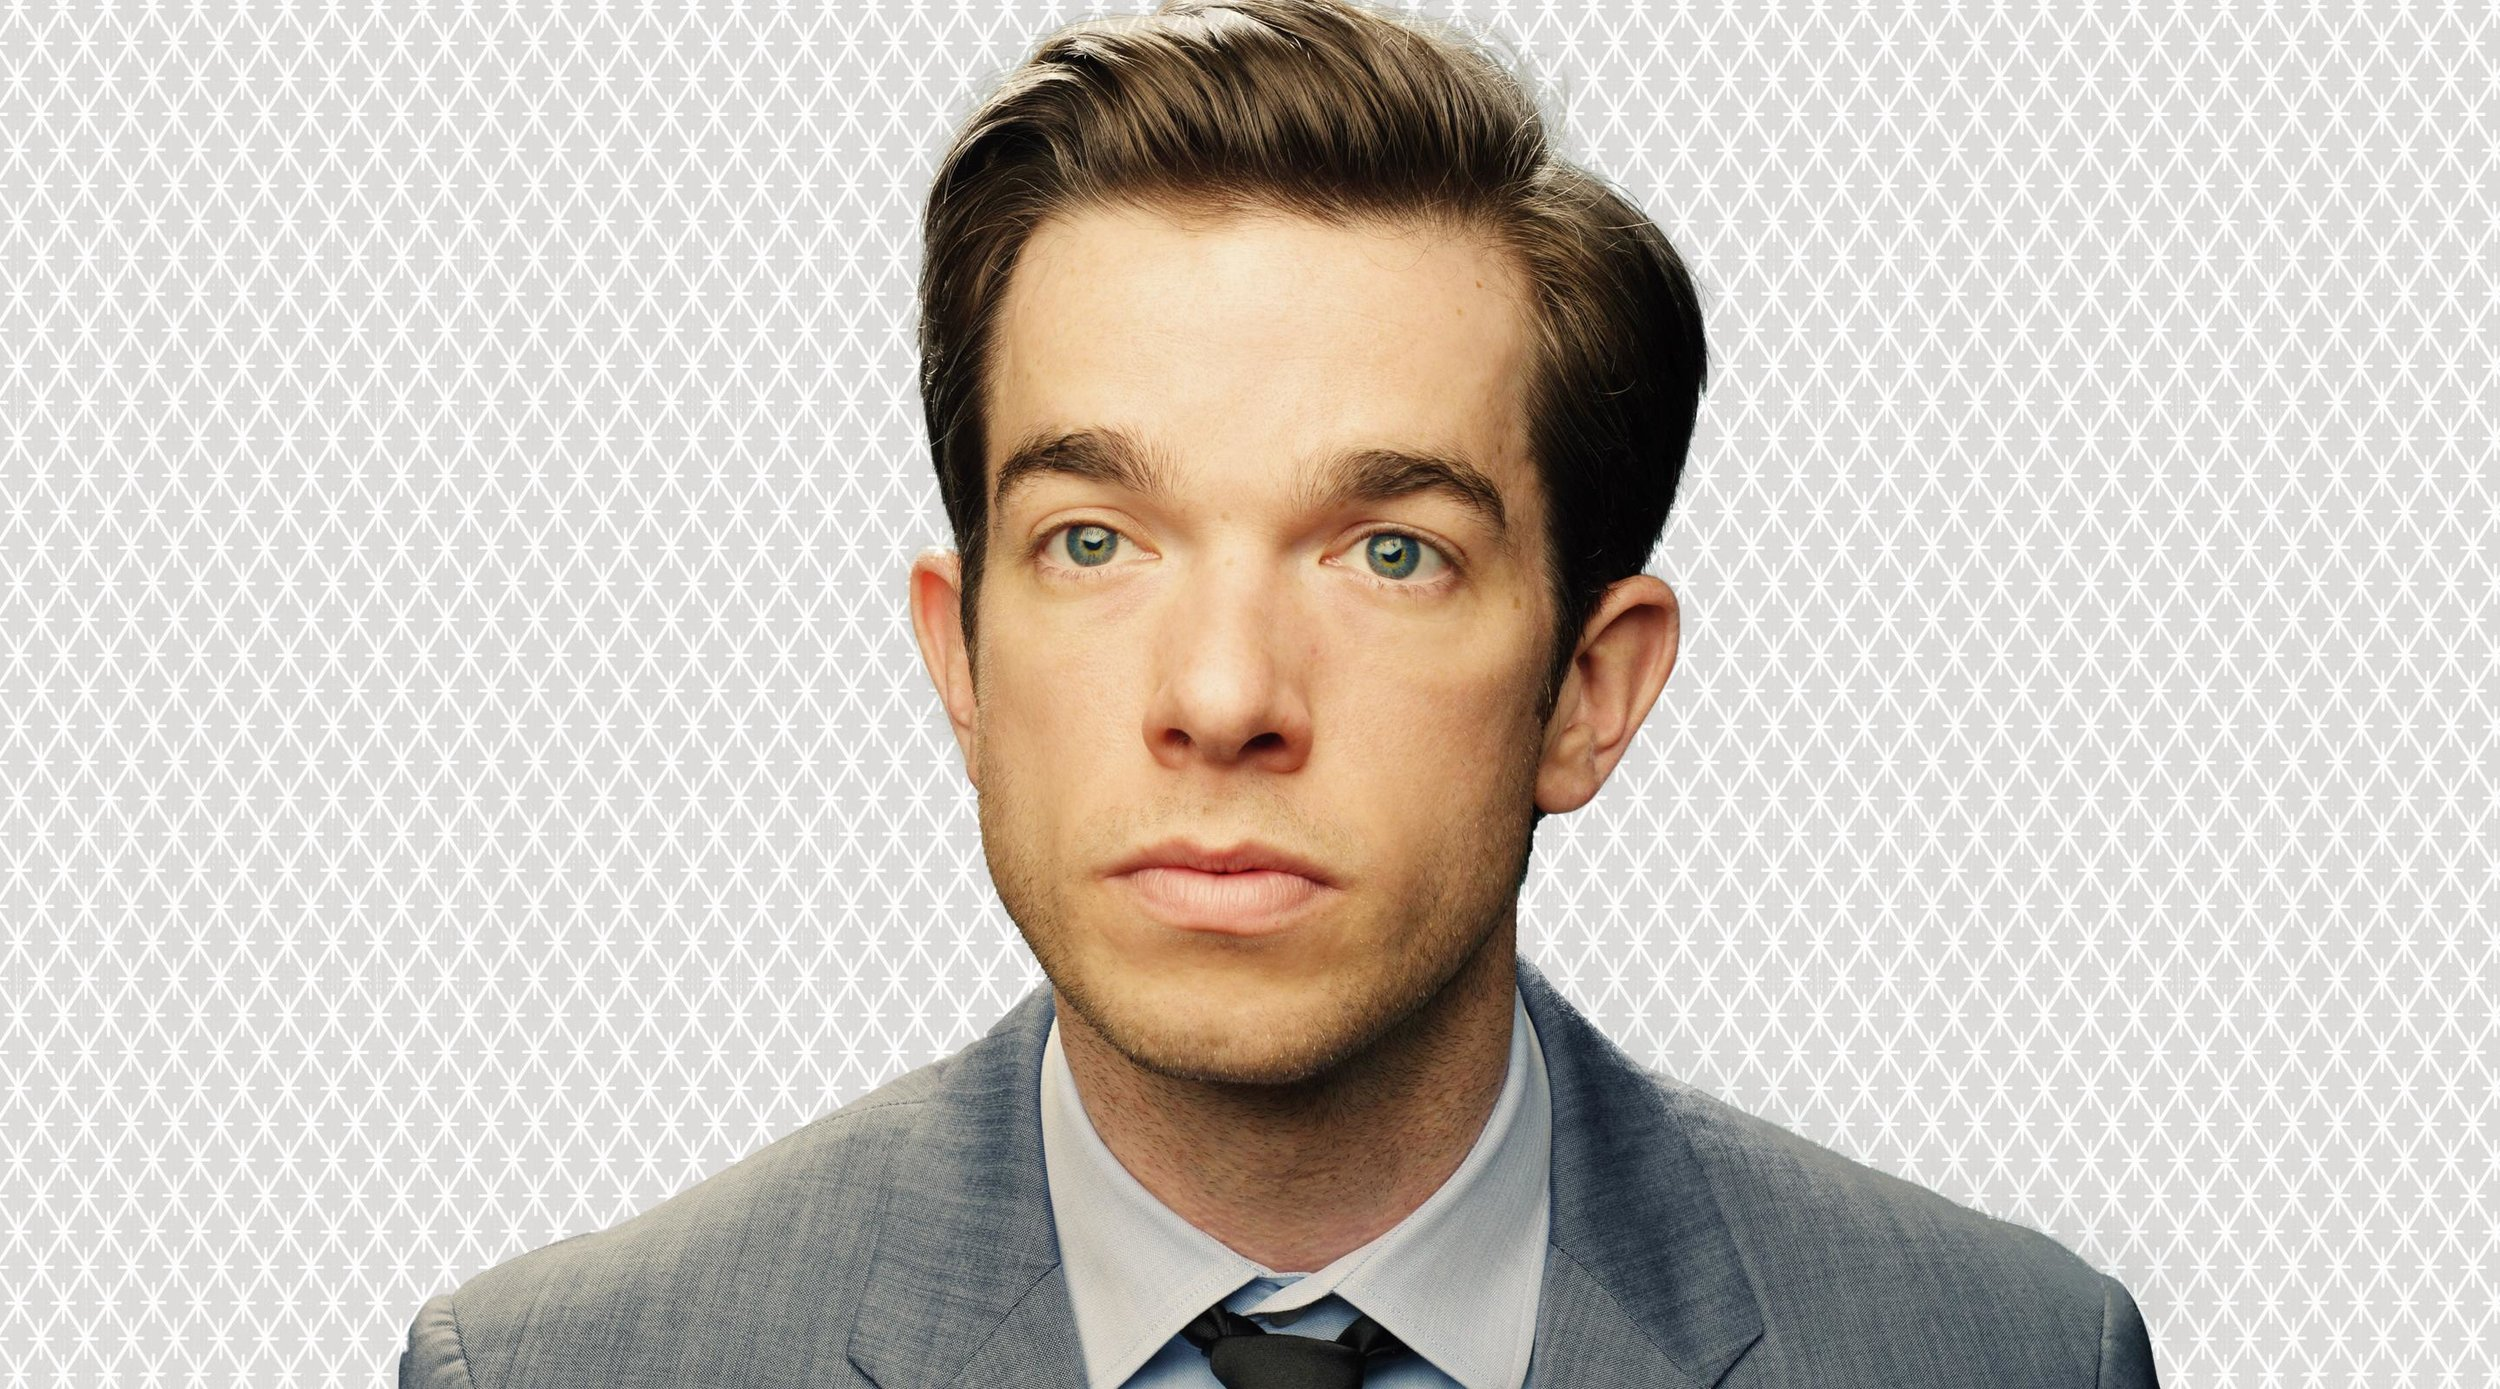 mirage-entertainment-aces-of-comedy-john-mulaney.jpg